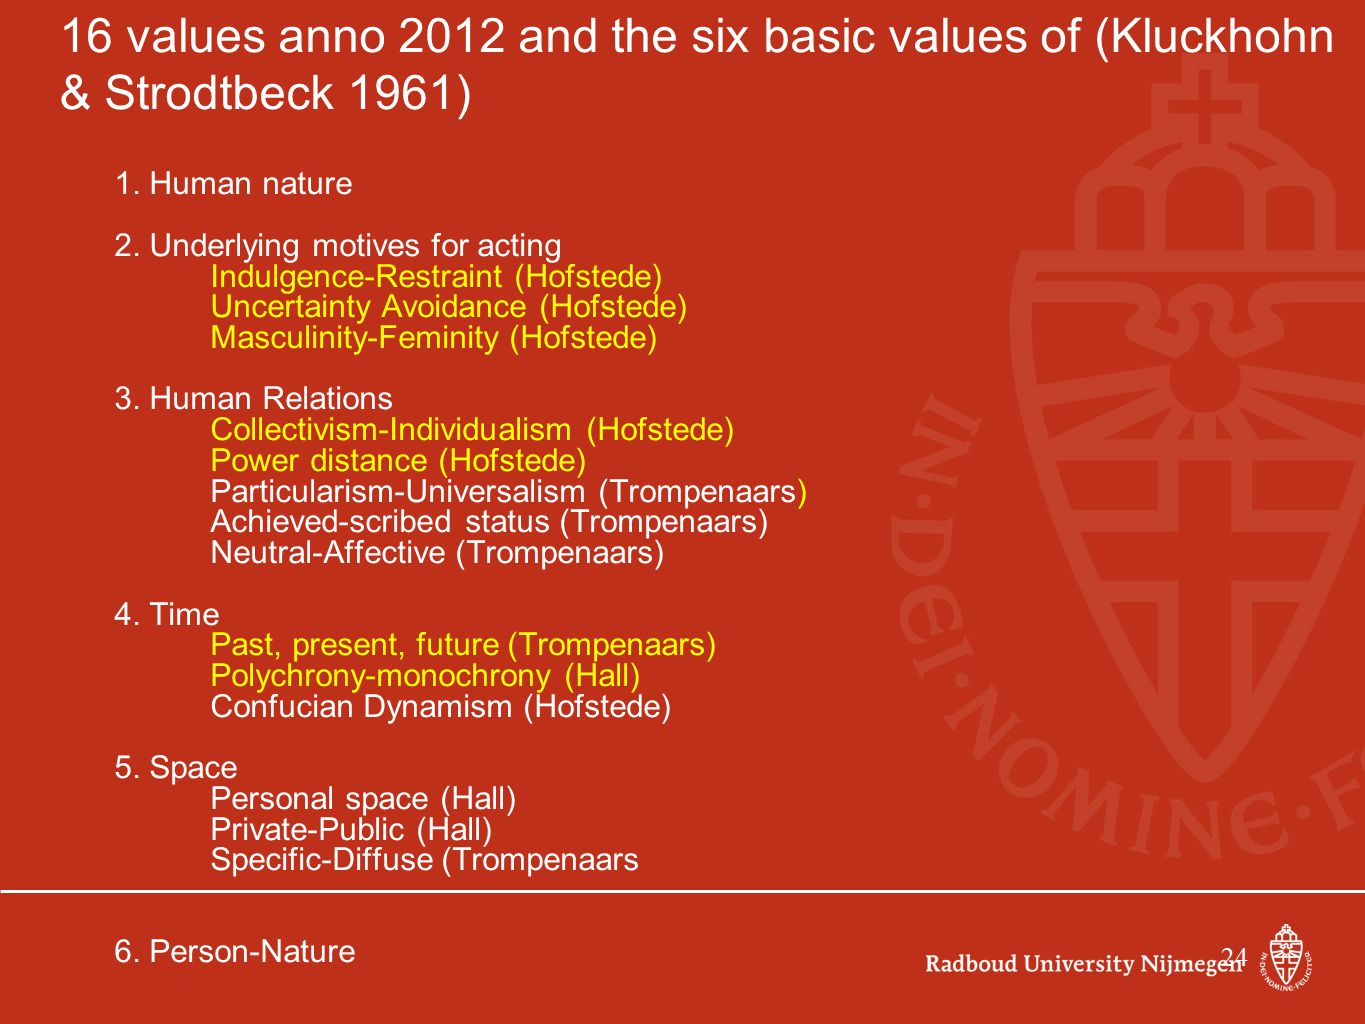 16 values anno 2012 and the six basic values of (Kluckhohn & Strodtbeck 1961)